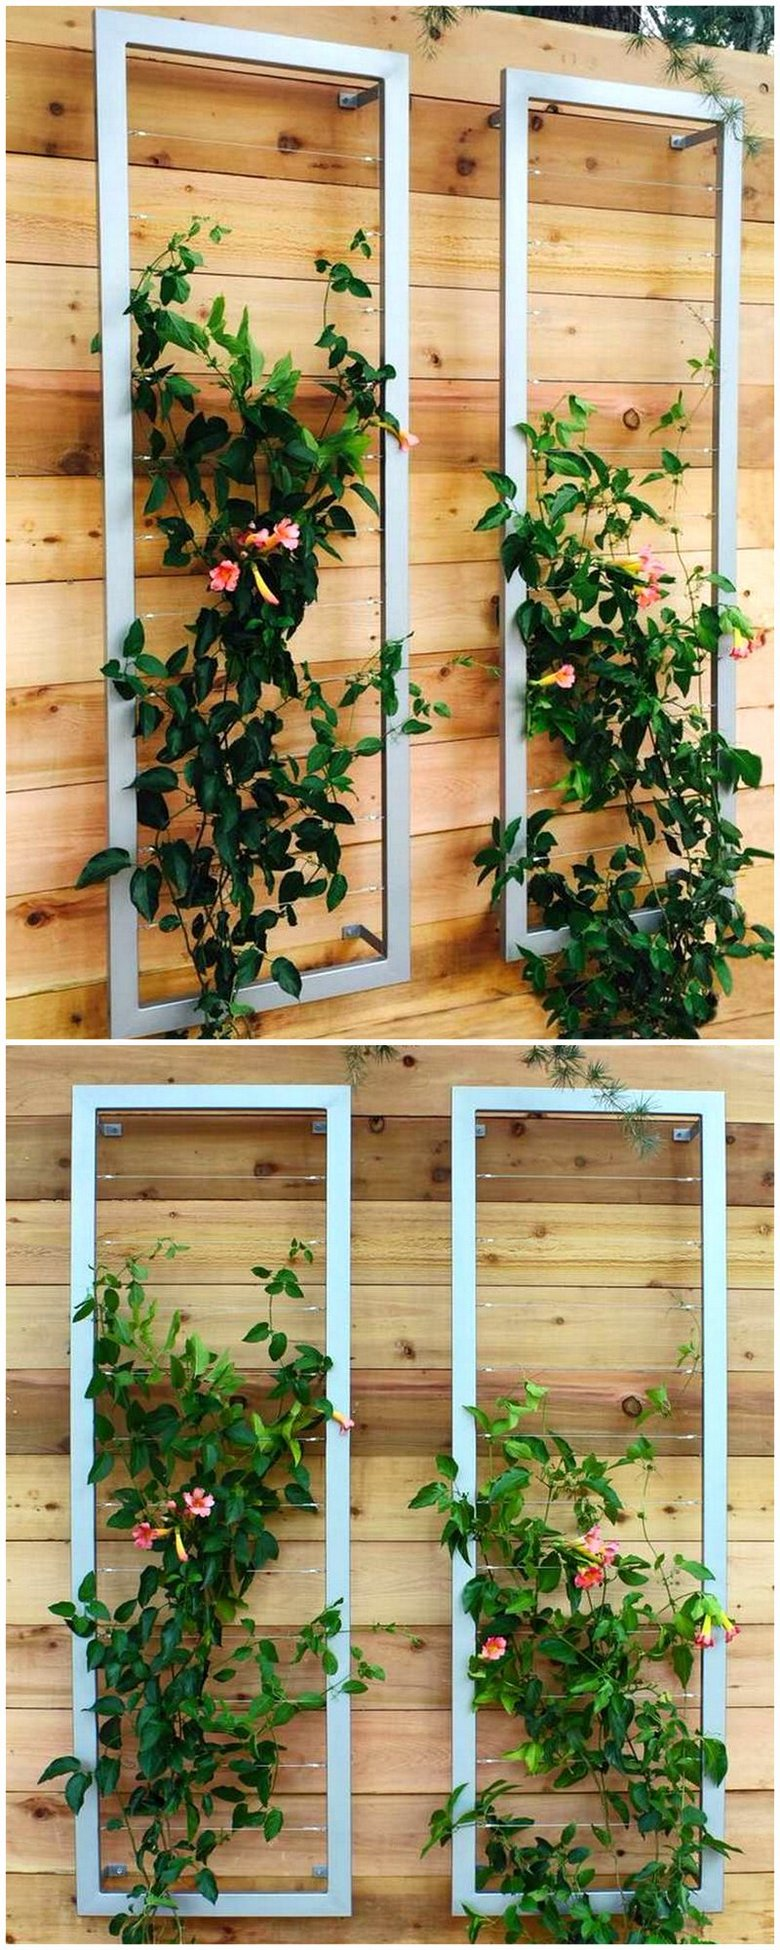 Awesome Trellises Design Ideas for Your Backyard | Pergola Gazebos